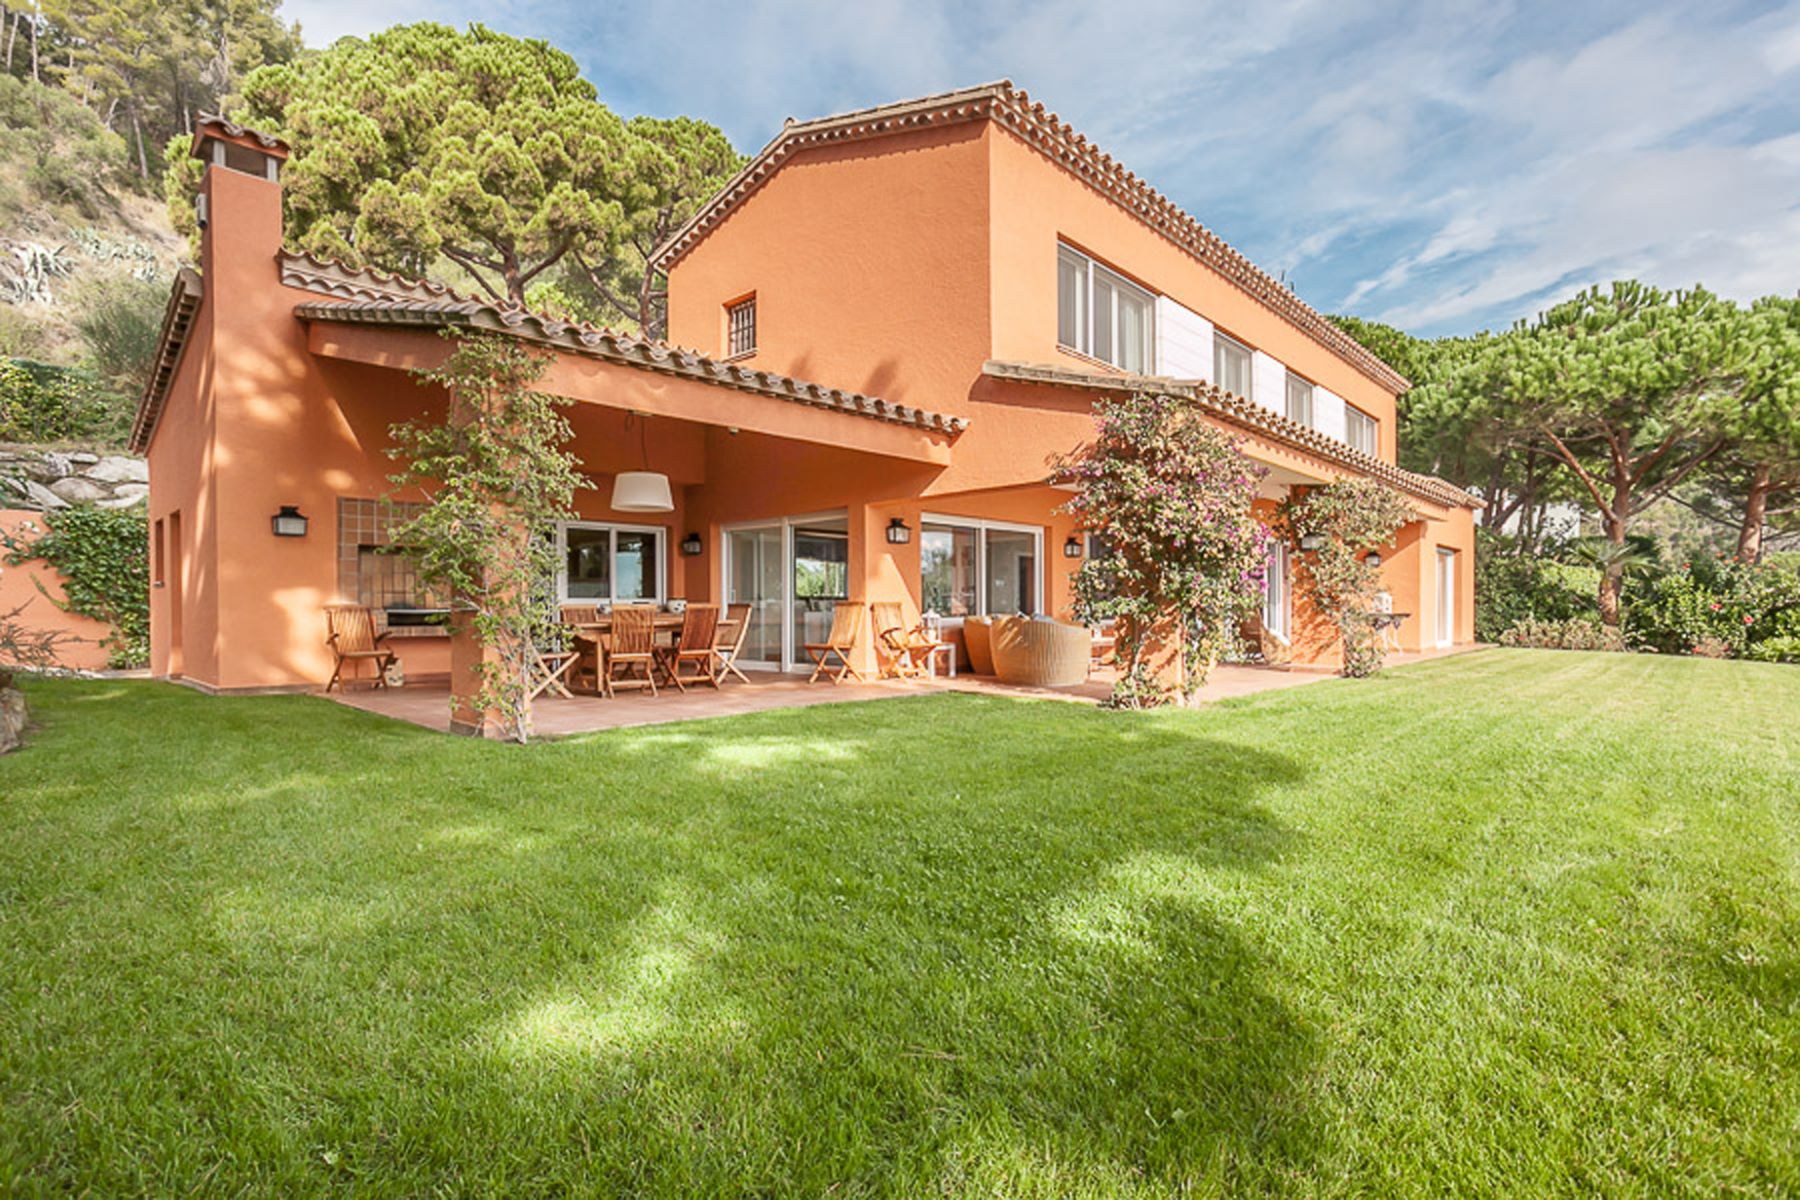 Maison unifamiliale pour l Vente à Bright villa with sea views in Punta Brava Sant Feliu De Guixols, Costa Brava, 17220 Espagne